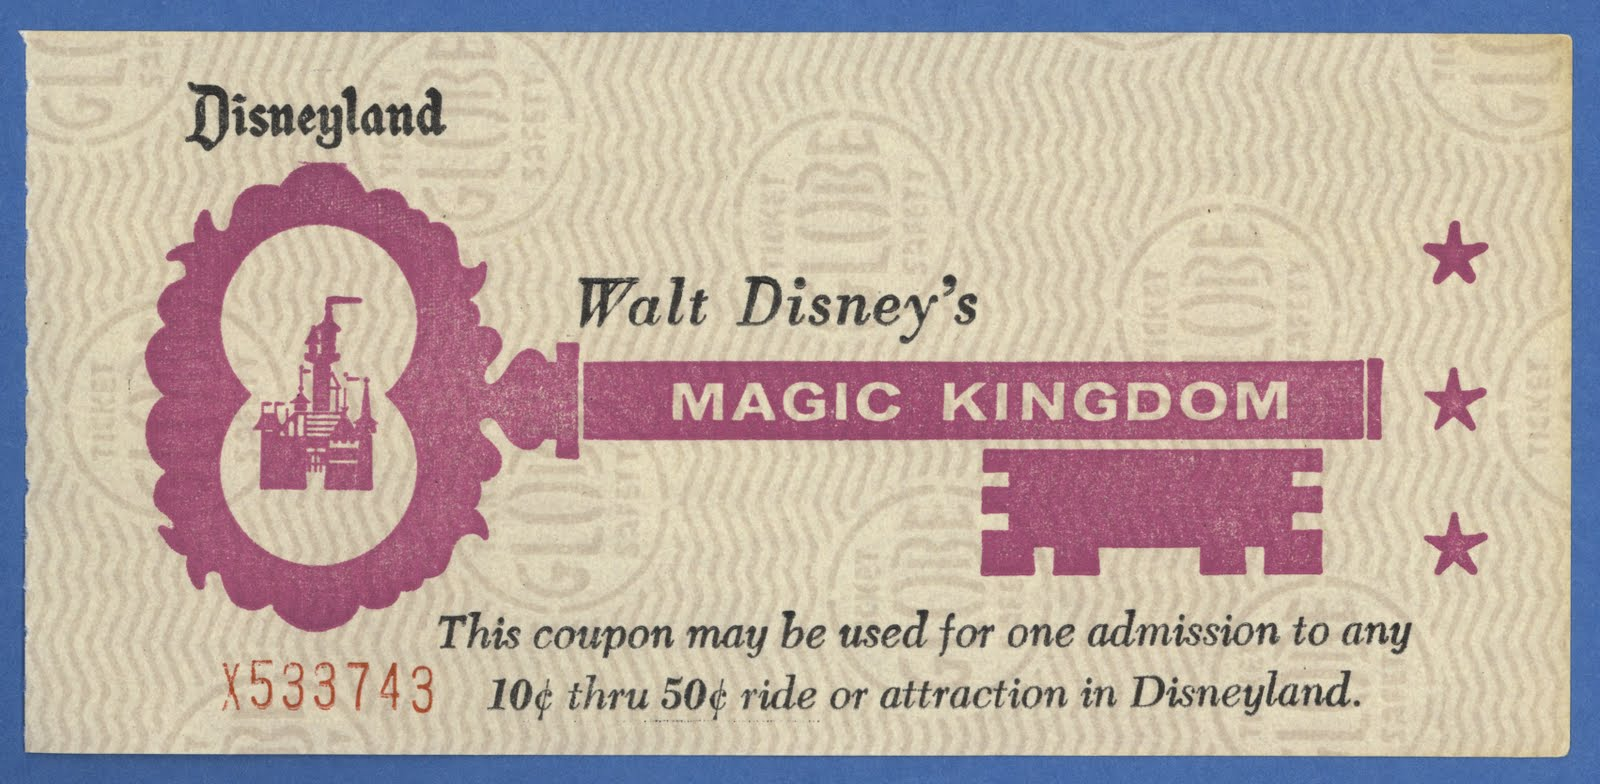 Other Places to Buy Advance Purchase Discount Disneyland Tickets Direct Purchase From Disney. You can obviously buy Disneyland tickets directly from Disney, but there are no advance purchase discounts online or by phone, except during rare special promotions.